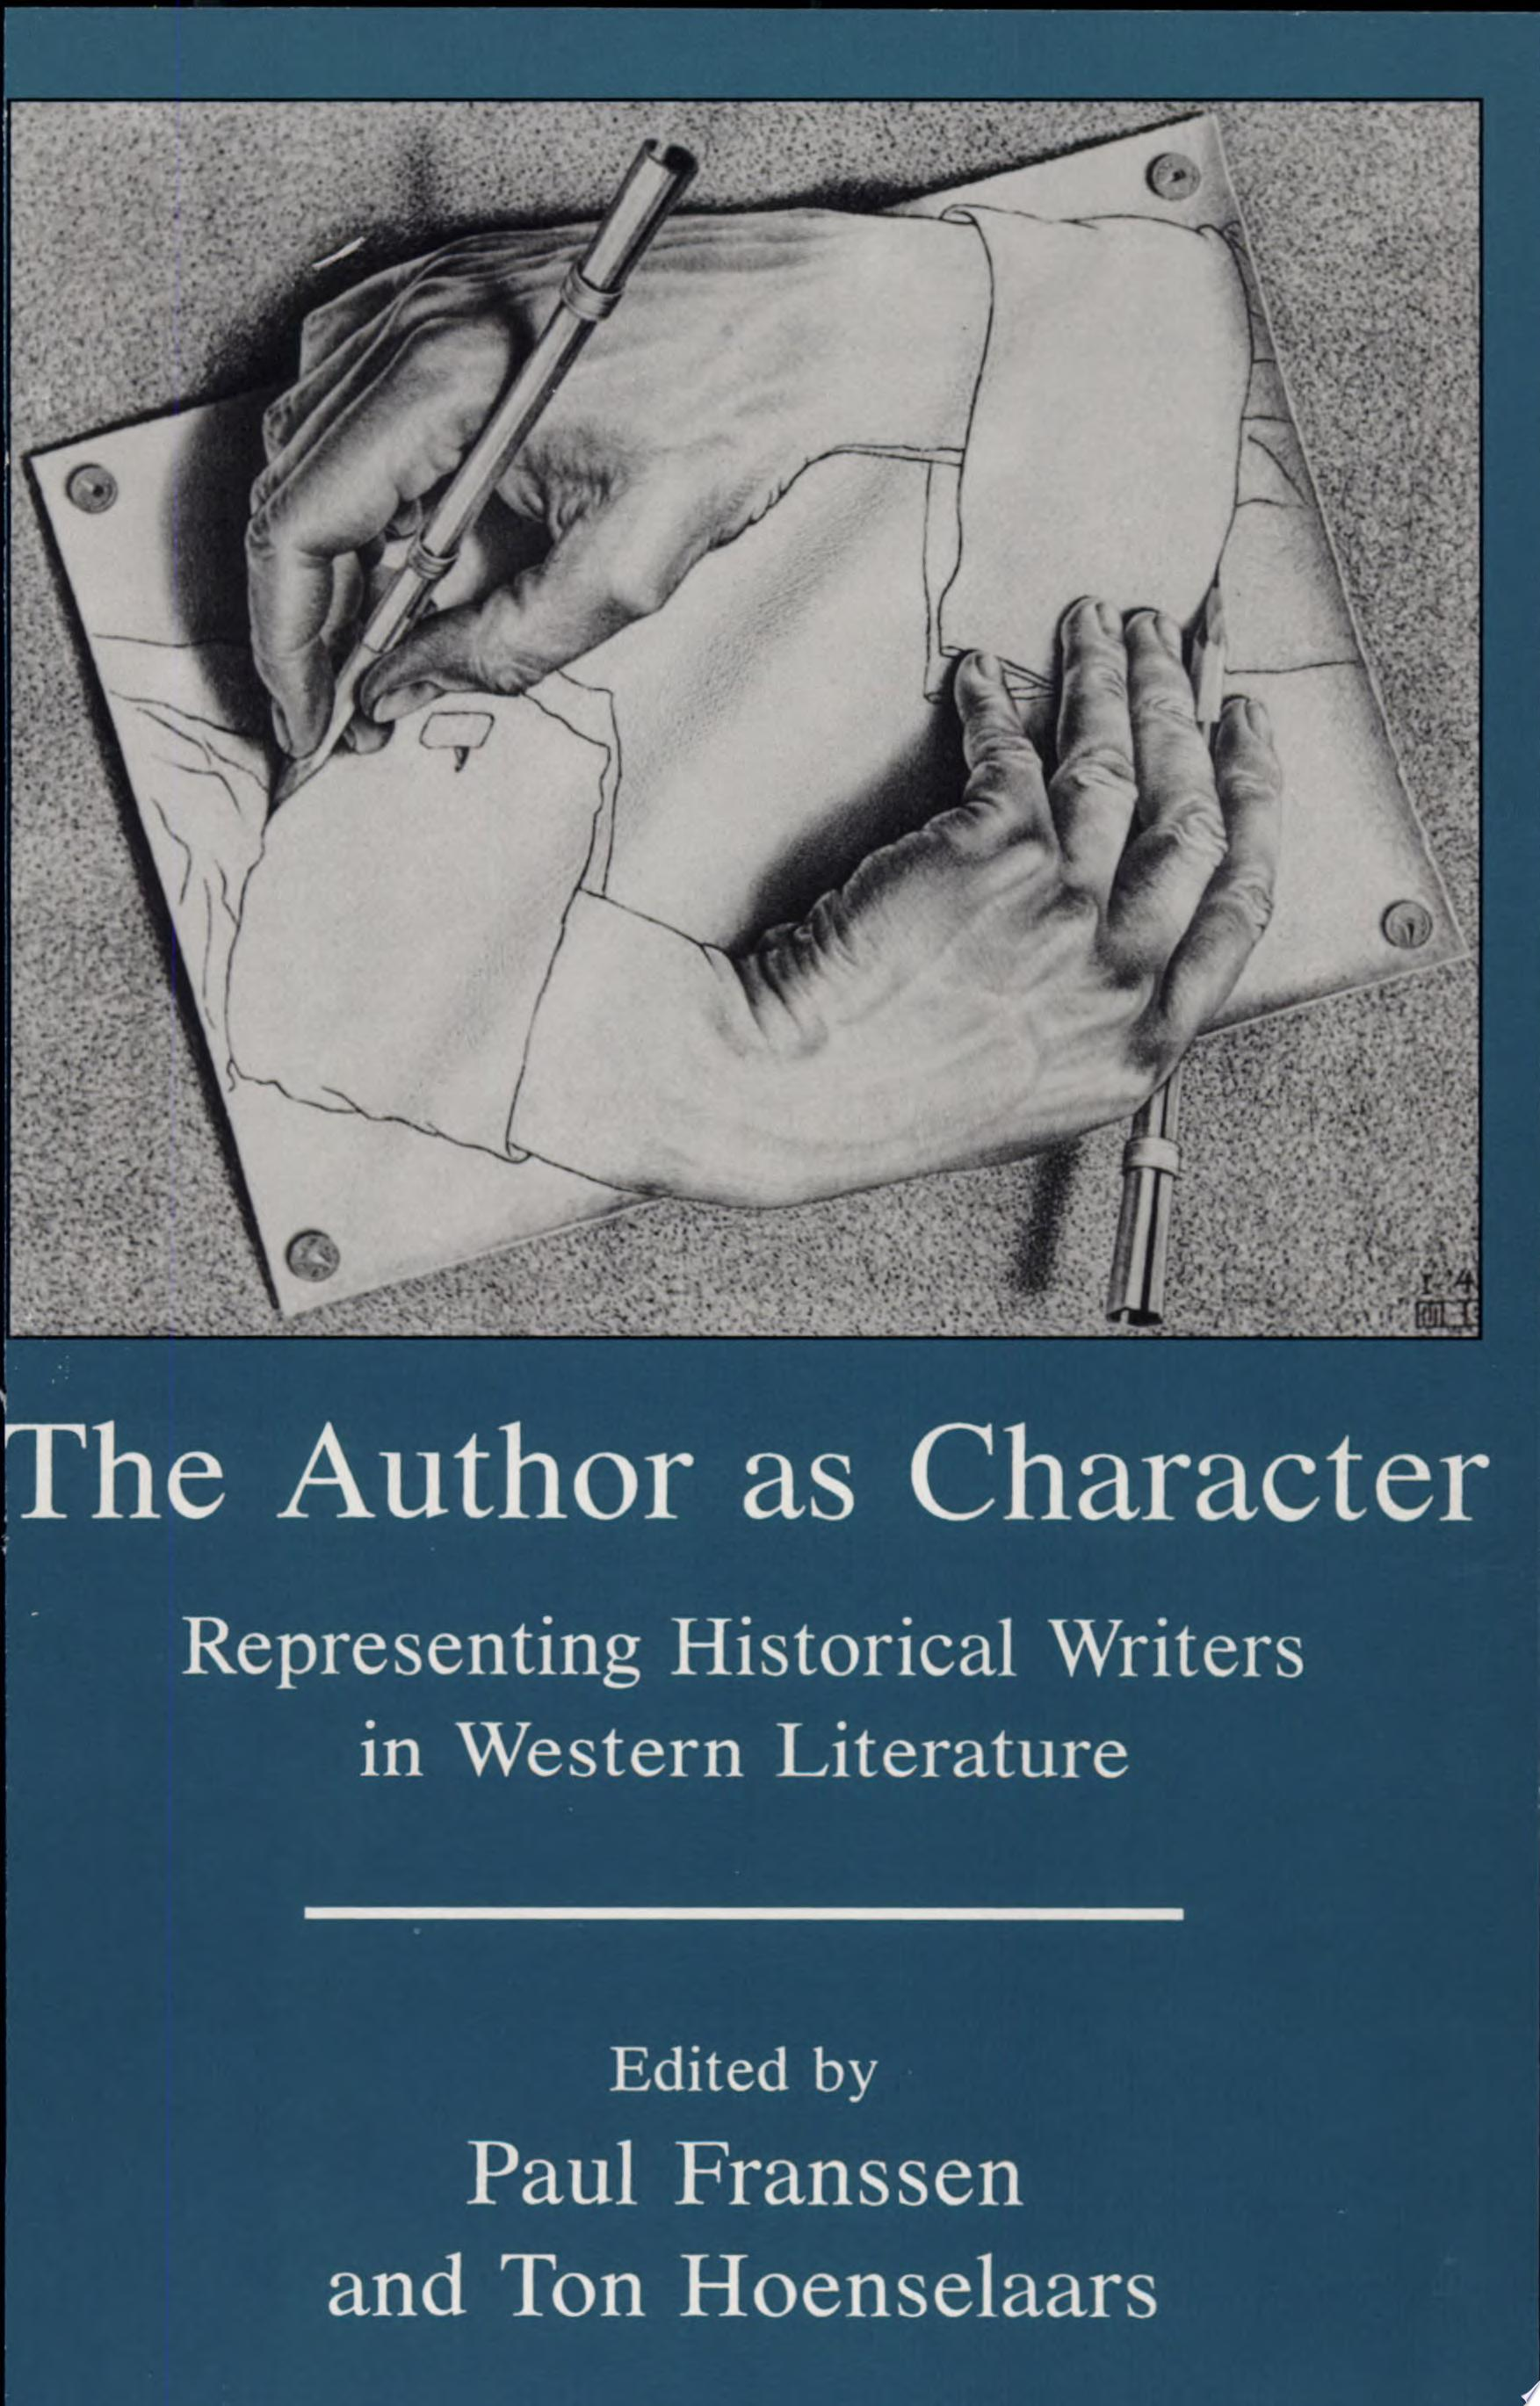 The Author as Character